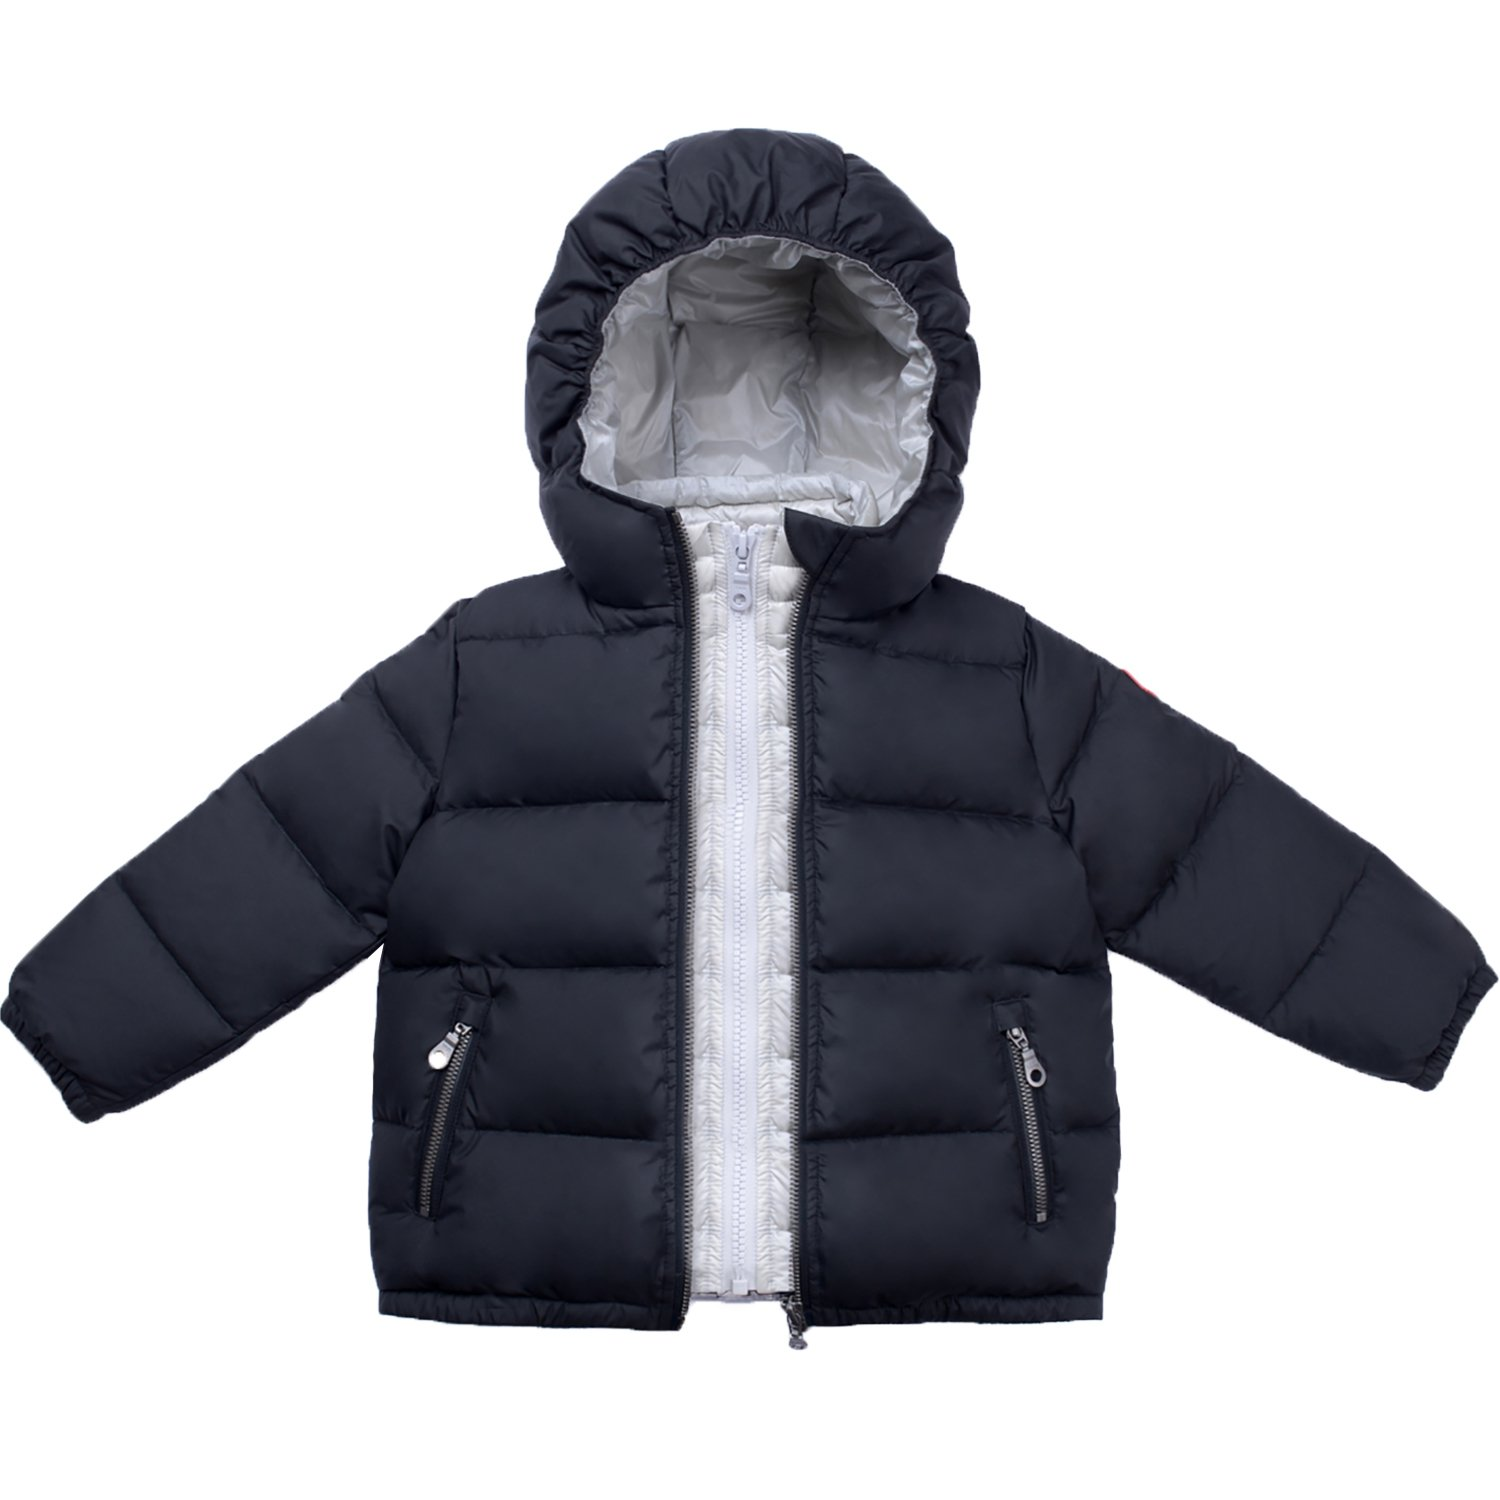 Nanny McPhee Baby Coats Unisex Baby Boys Girls Warm Down Puffer Jackets Kids Winter Outwear 5-12 Months/1-6 Years Old